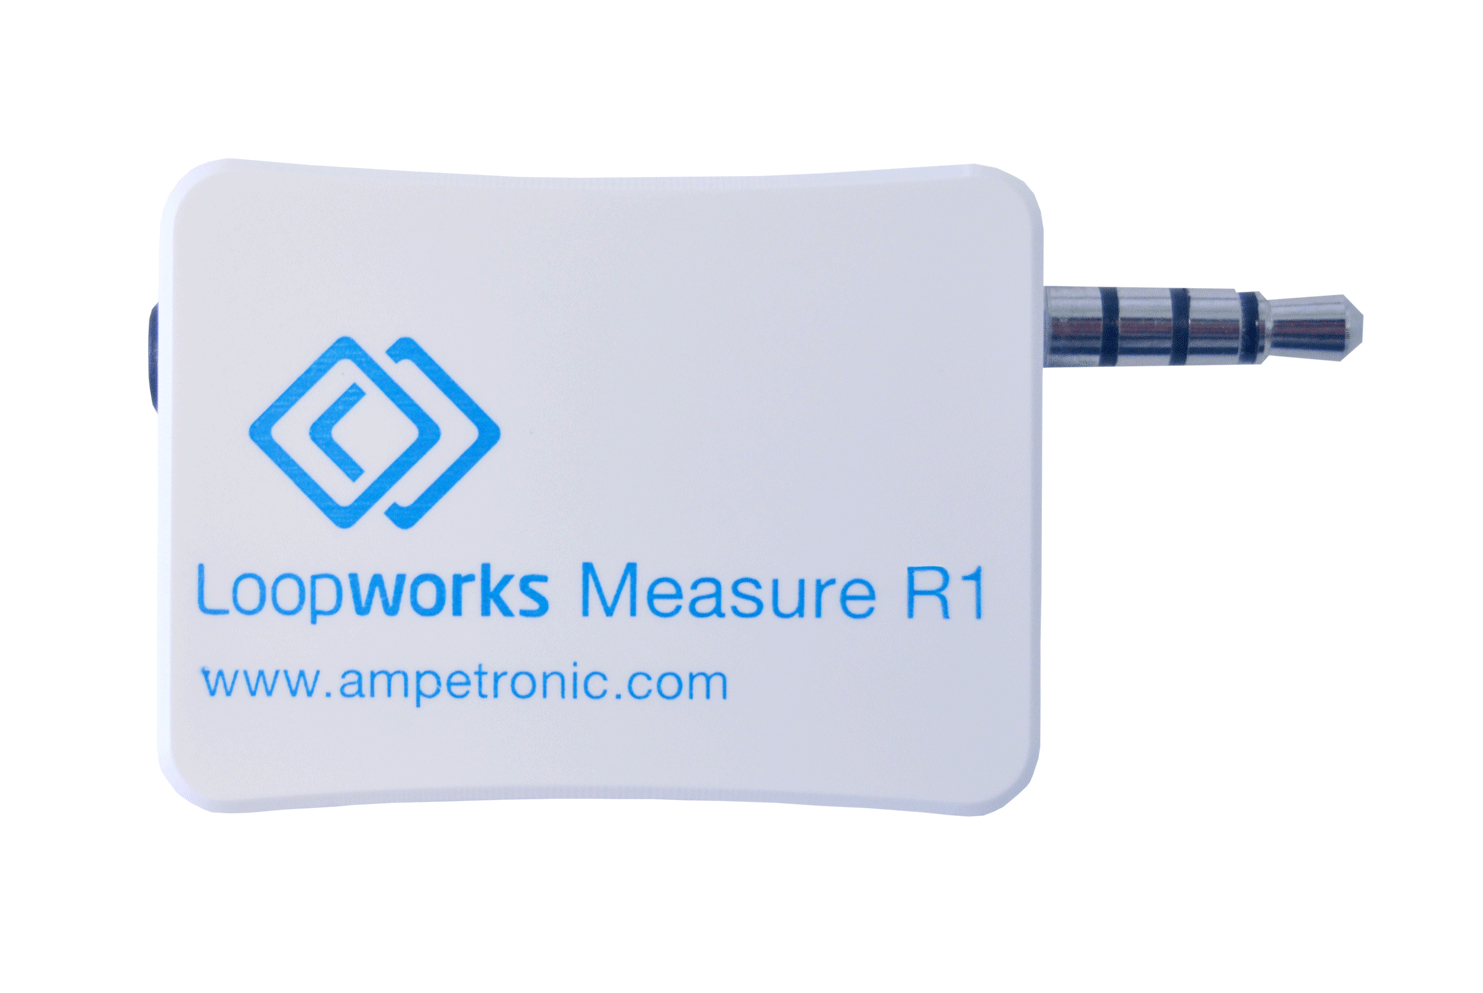 Loopworks Measure R1 field strength meter